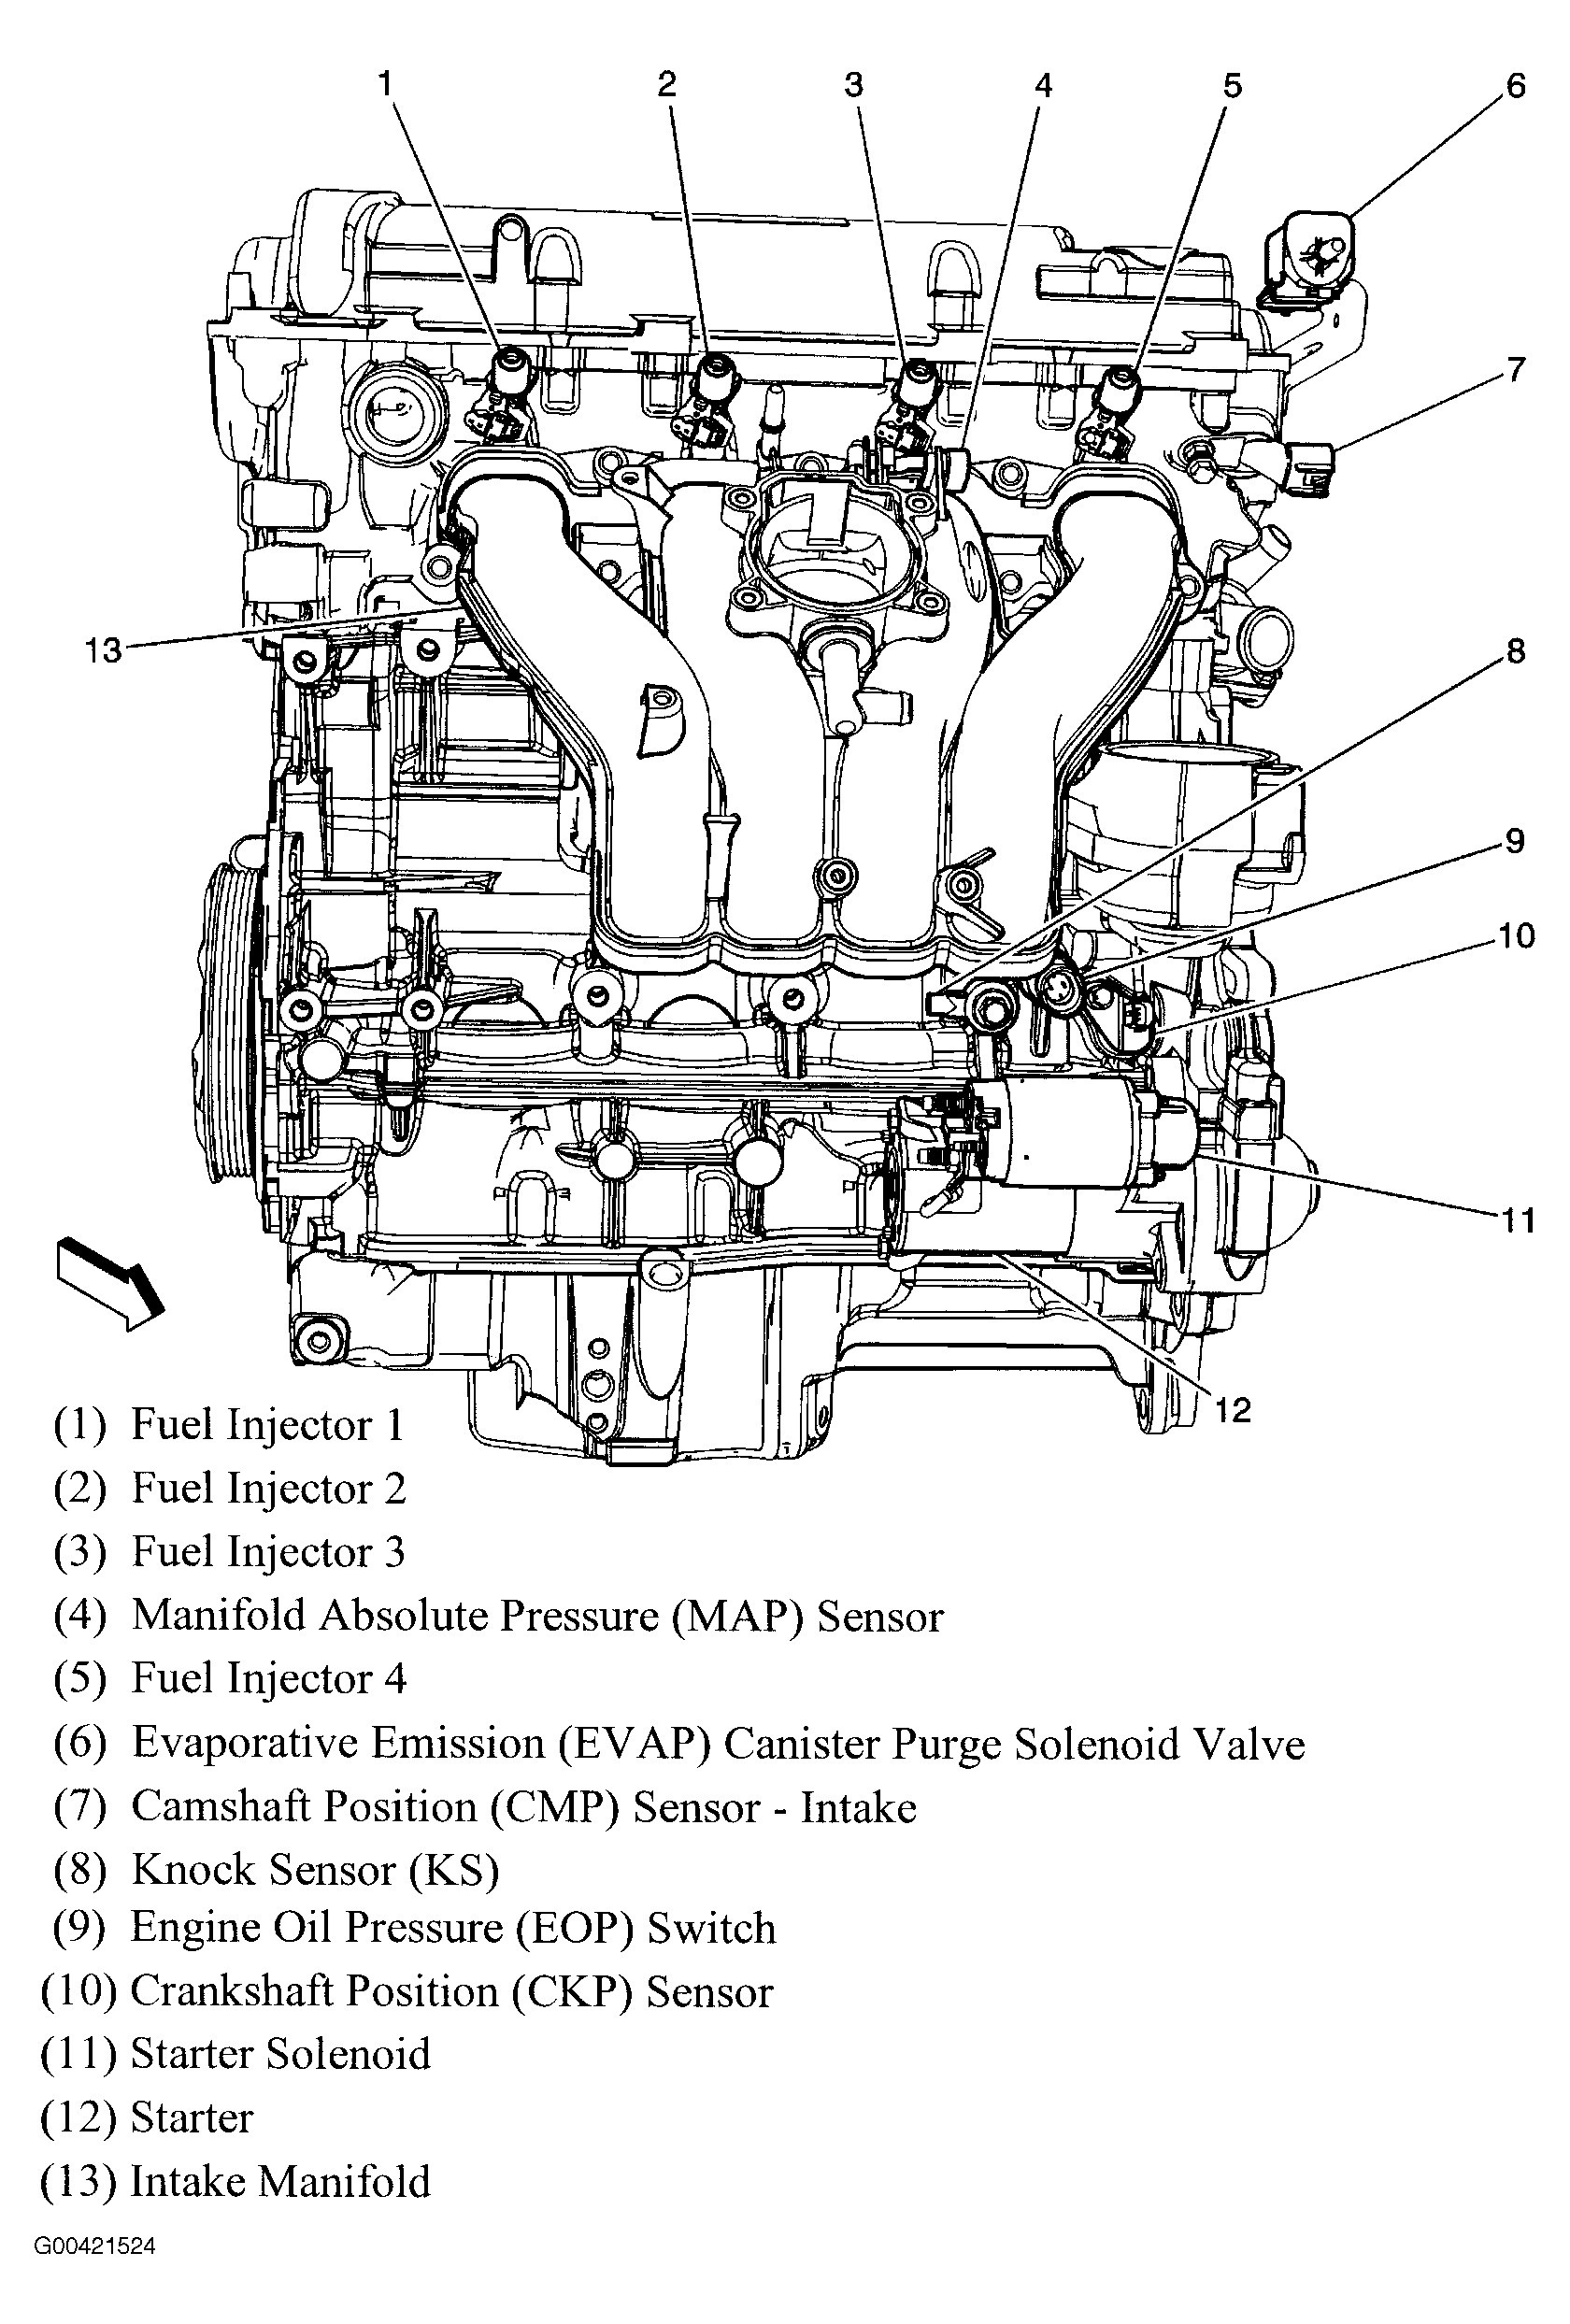 hight resolution of cavalier 2 4 engine diagram wiring diagram expert 1996 cavalier engine diagram